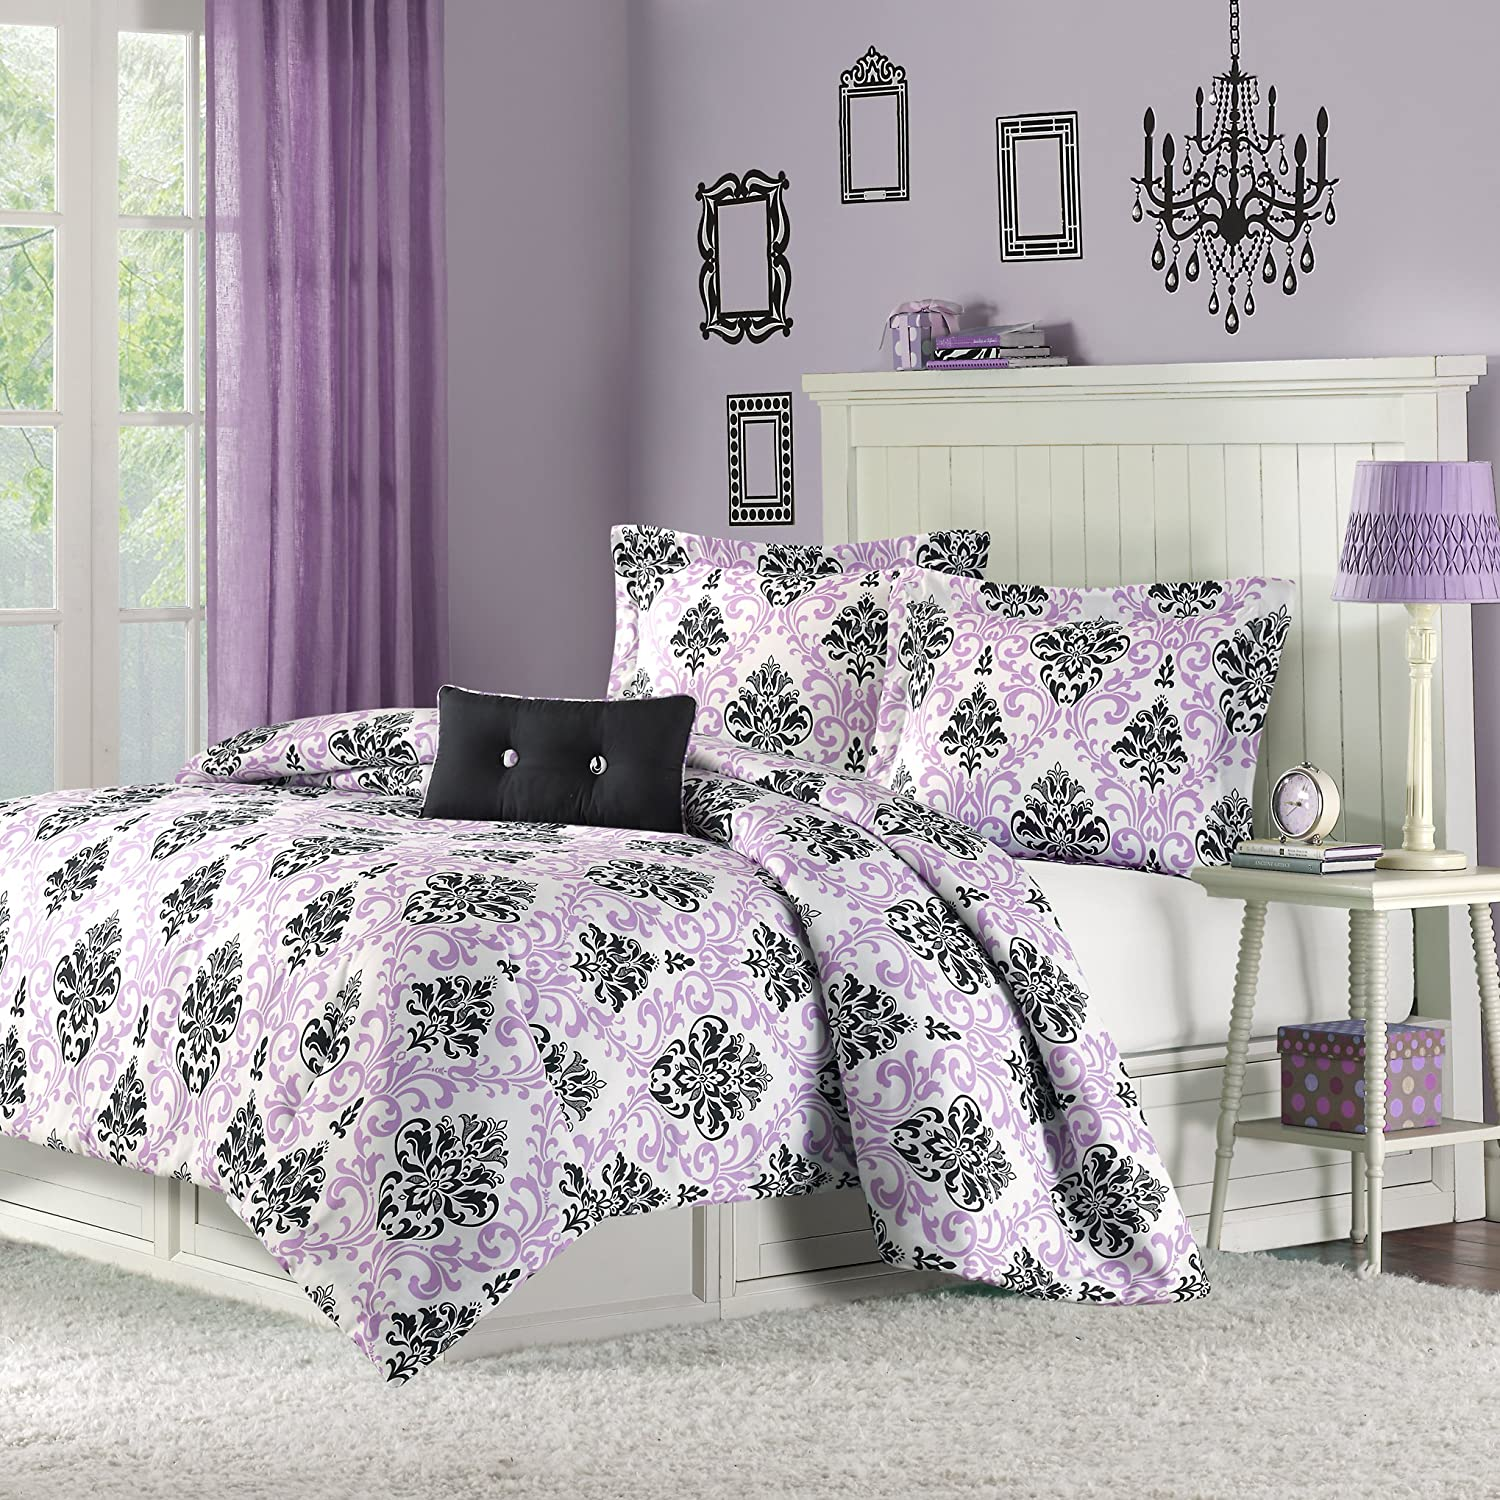 Mizone Katelyn 4 Piece Comforter Set, Full/Queen, Purple